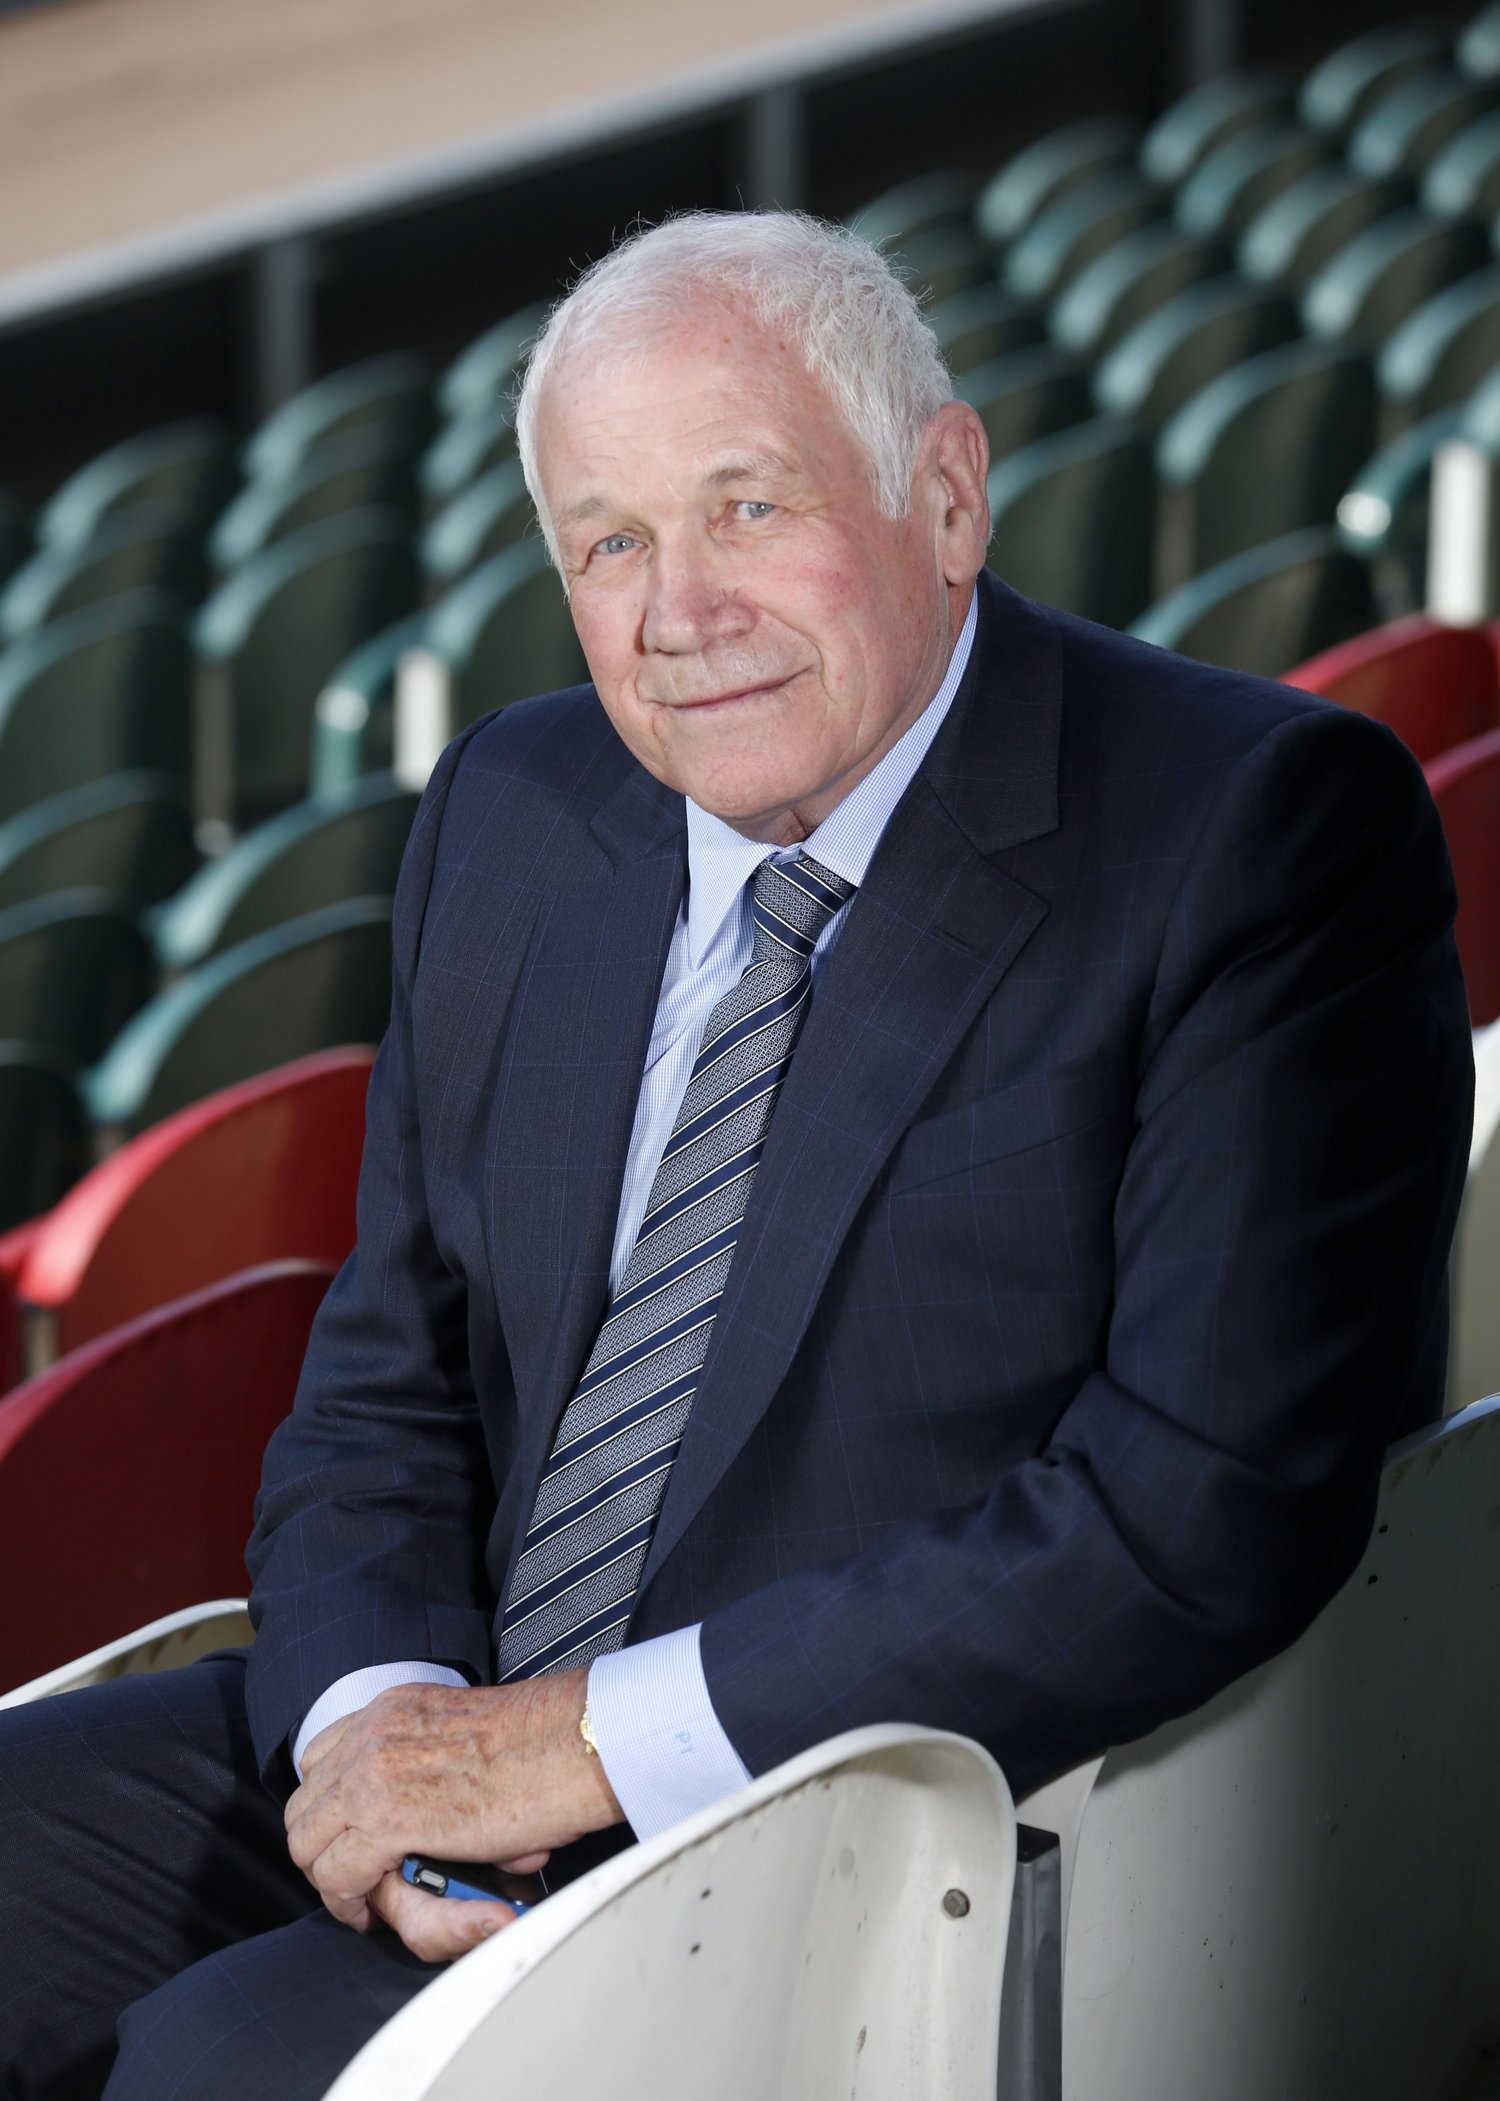 Peter Tom, Leicester Tigers Chairman